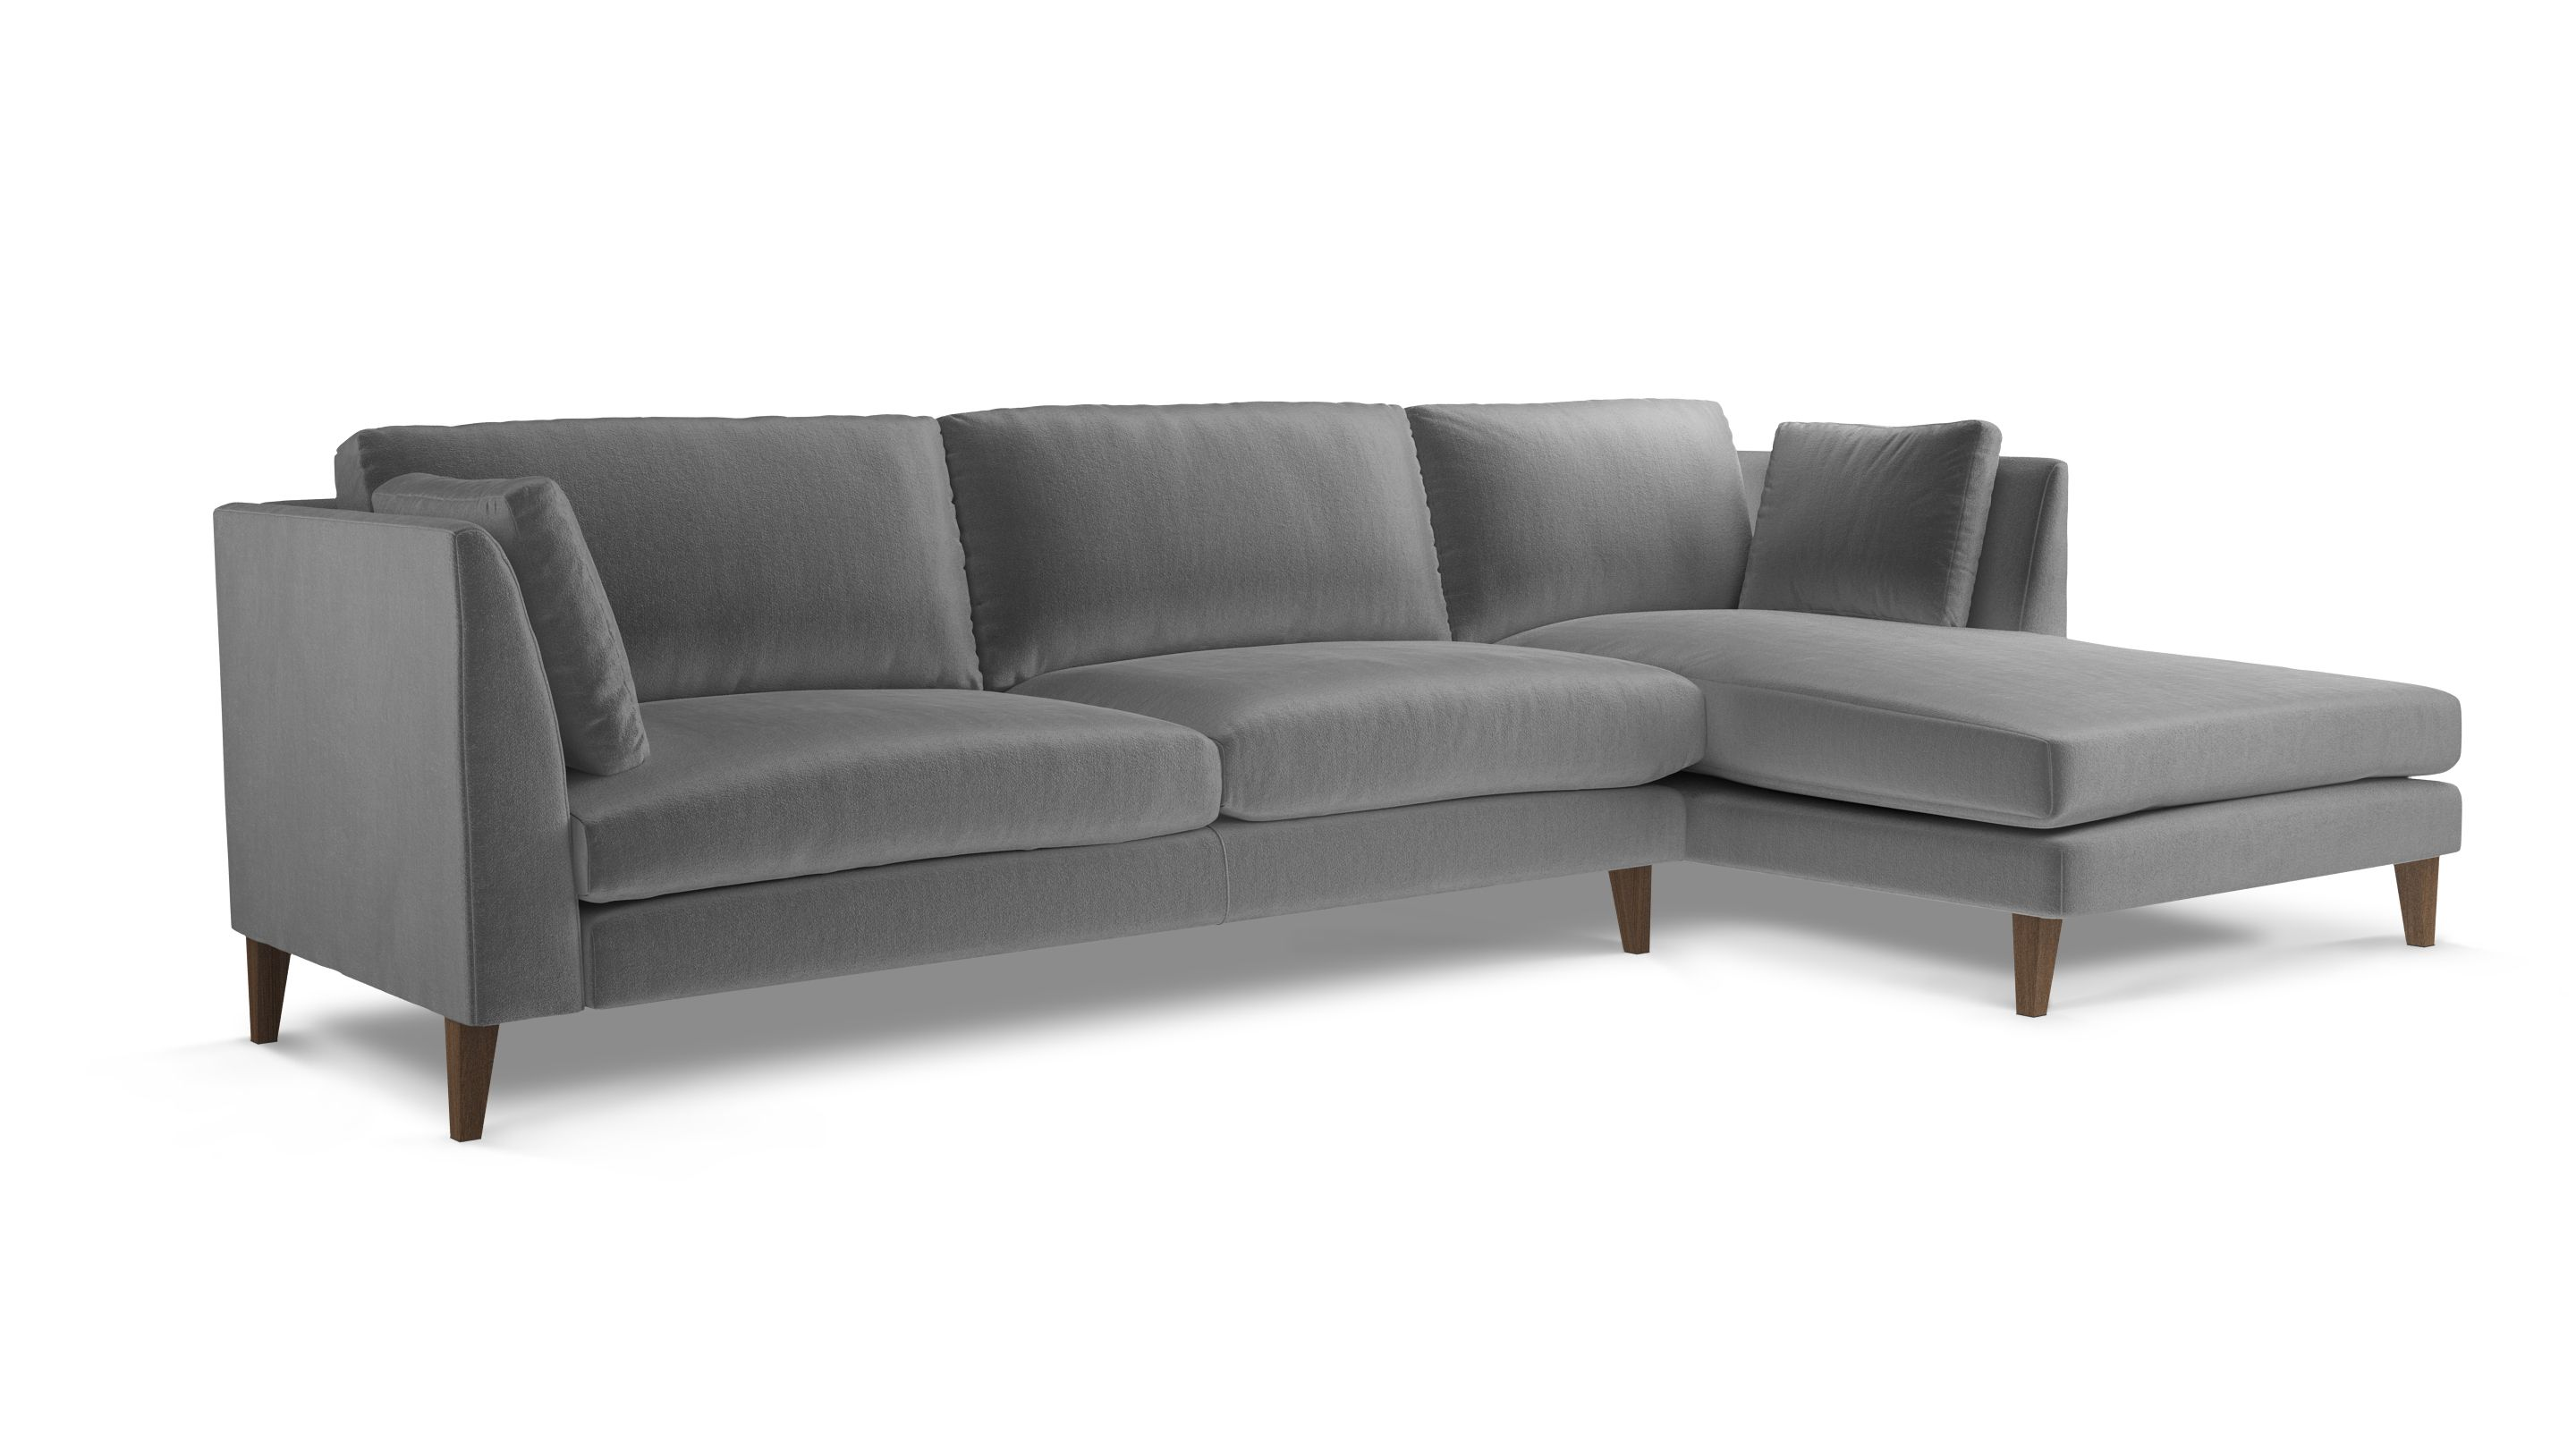 Meet Philo Chaise Rhf This Large L Shaped Sofa With Extra Leg Space